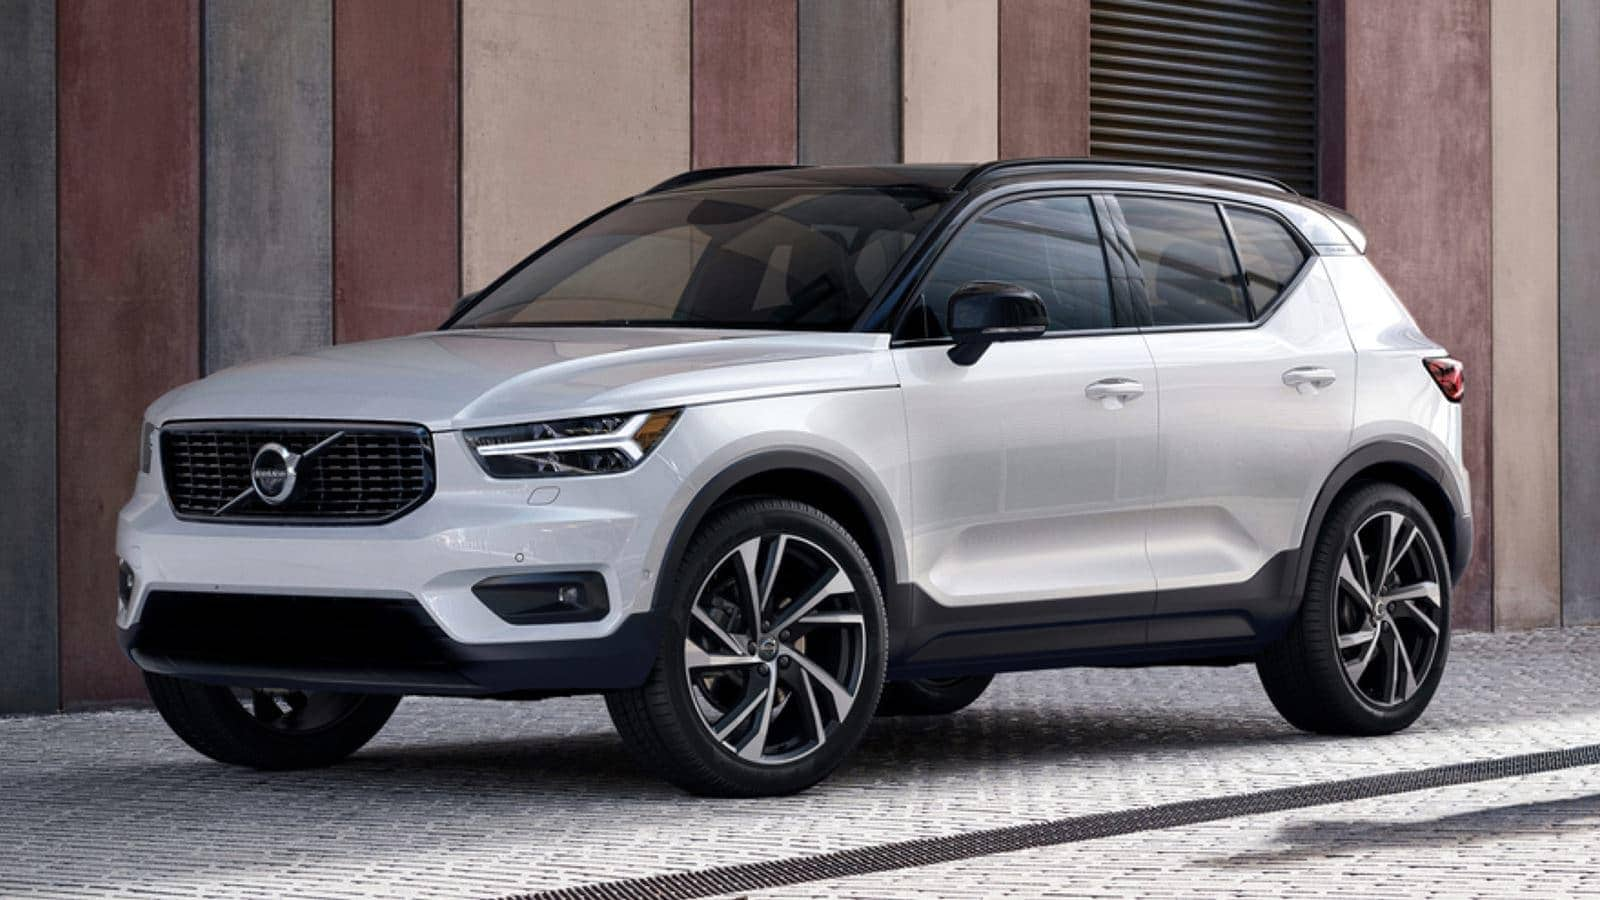 XC40 Compact Crossover SUV